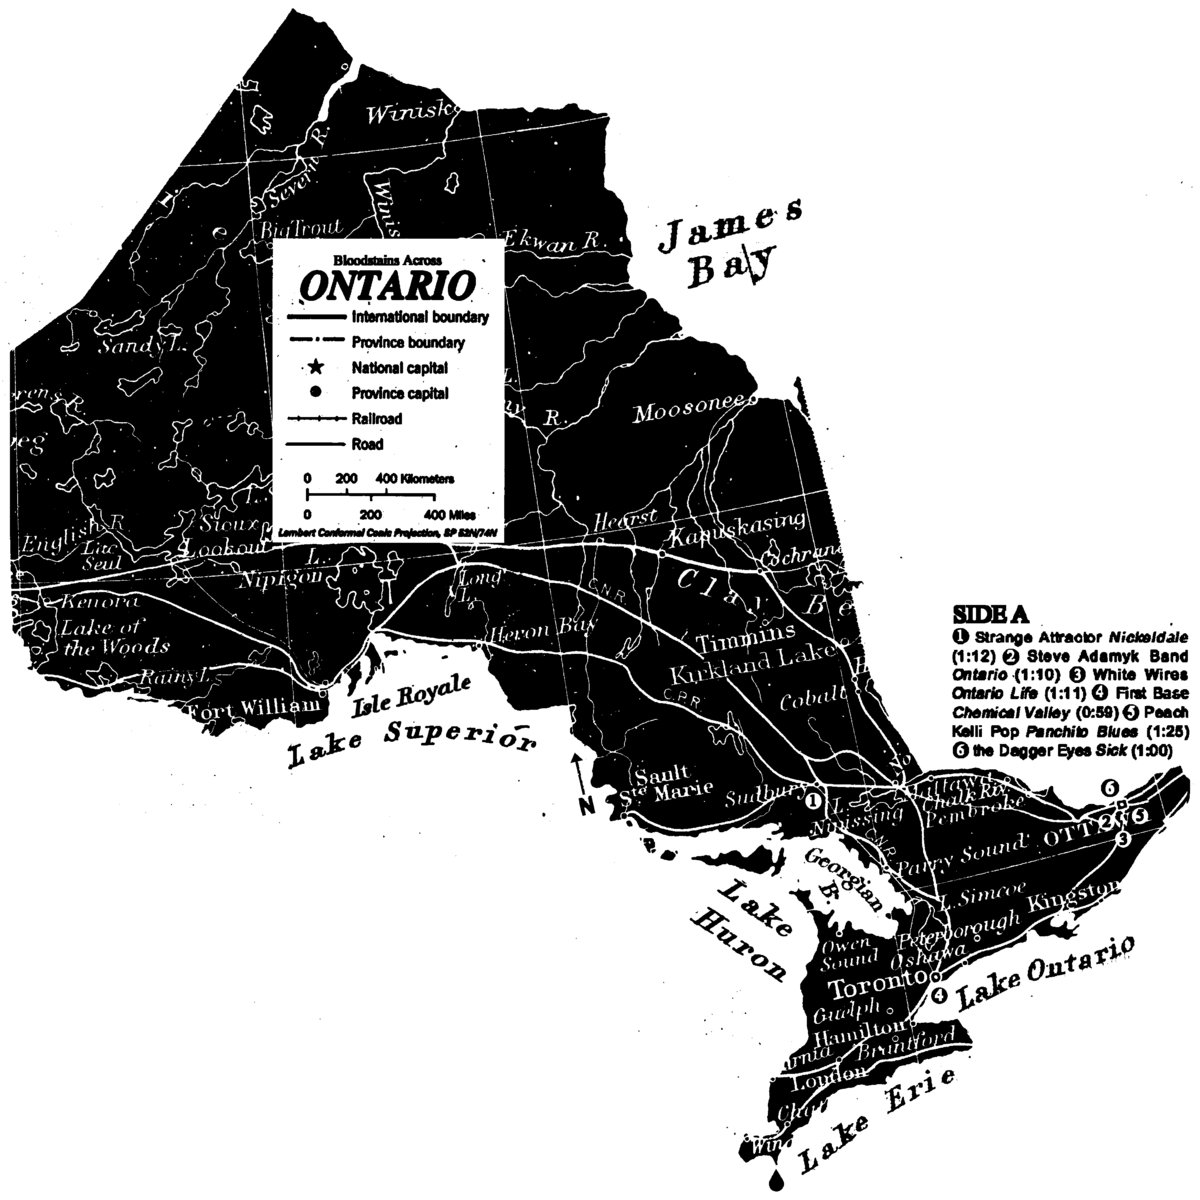 cover of Bloodstains Across Ontario